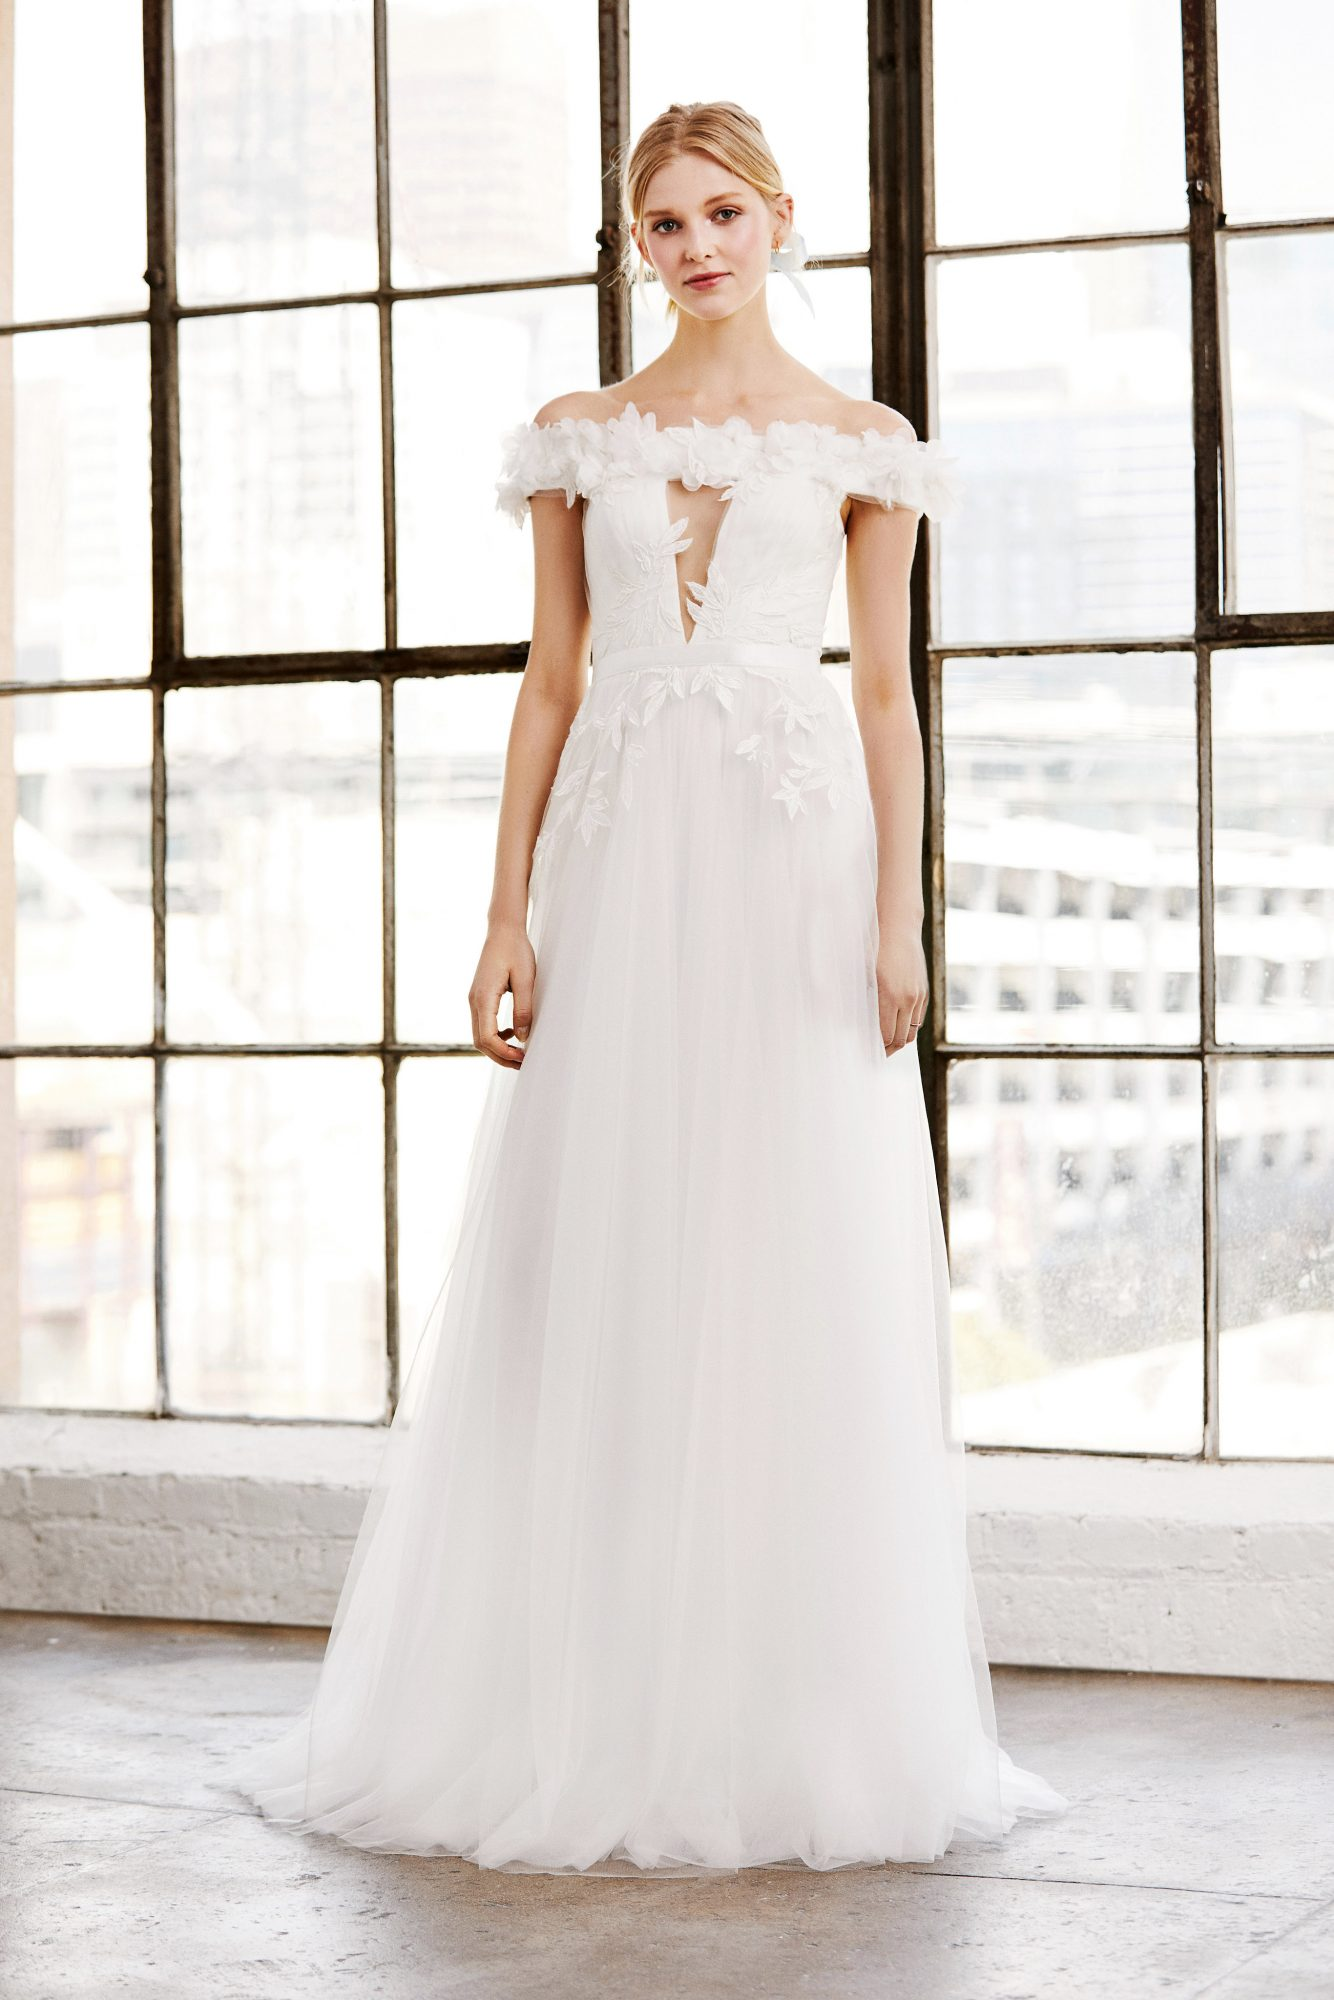 tadashi shoji wedding dress spring 2019 off the shoulder cutout a-line